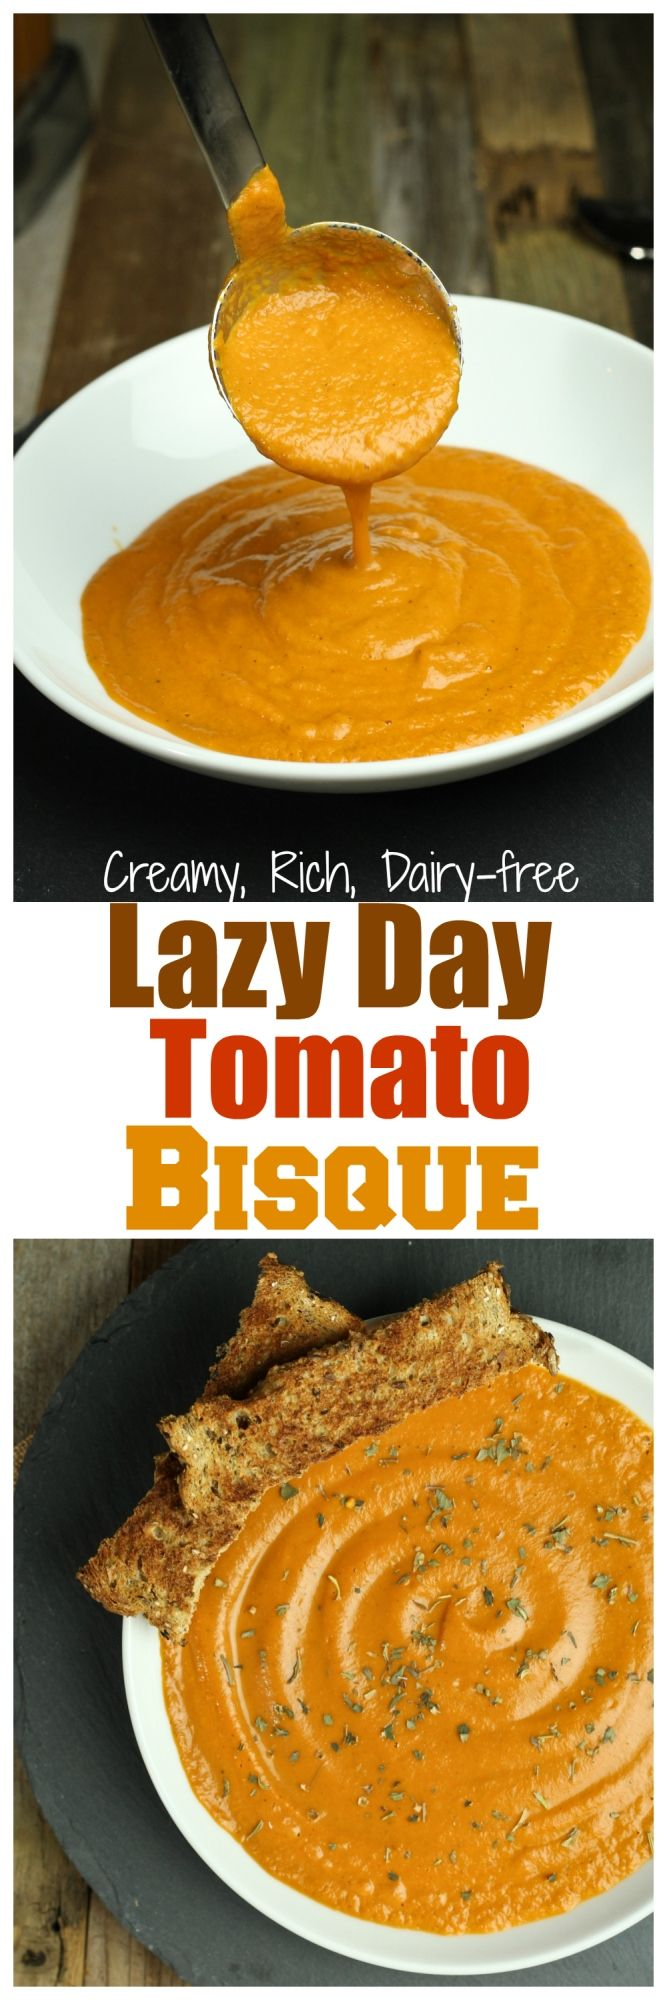 Delicious, creamy, rich tomato bisque that is dairy-free, oil-free and comes together in less than an hour!